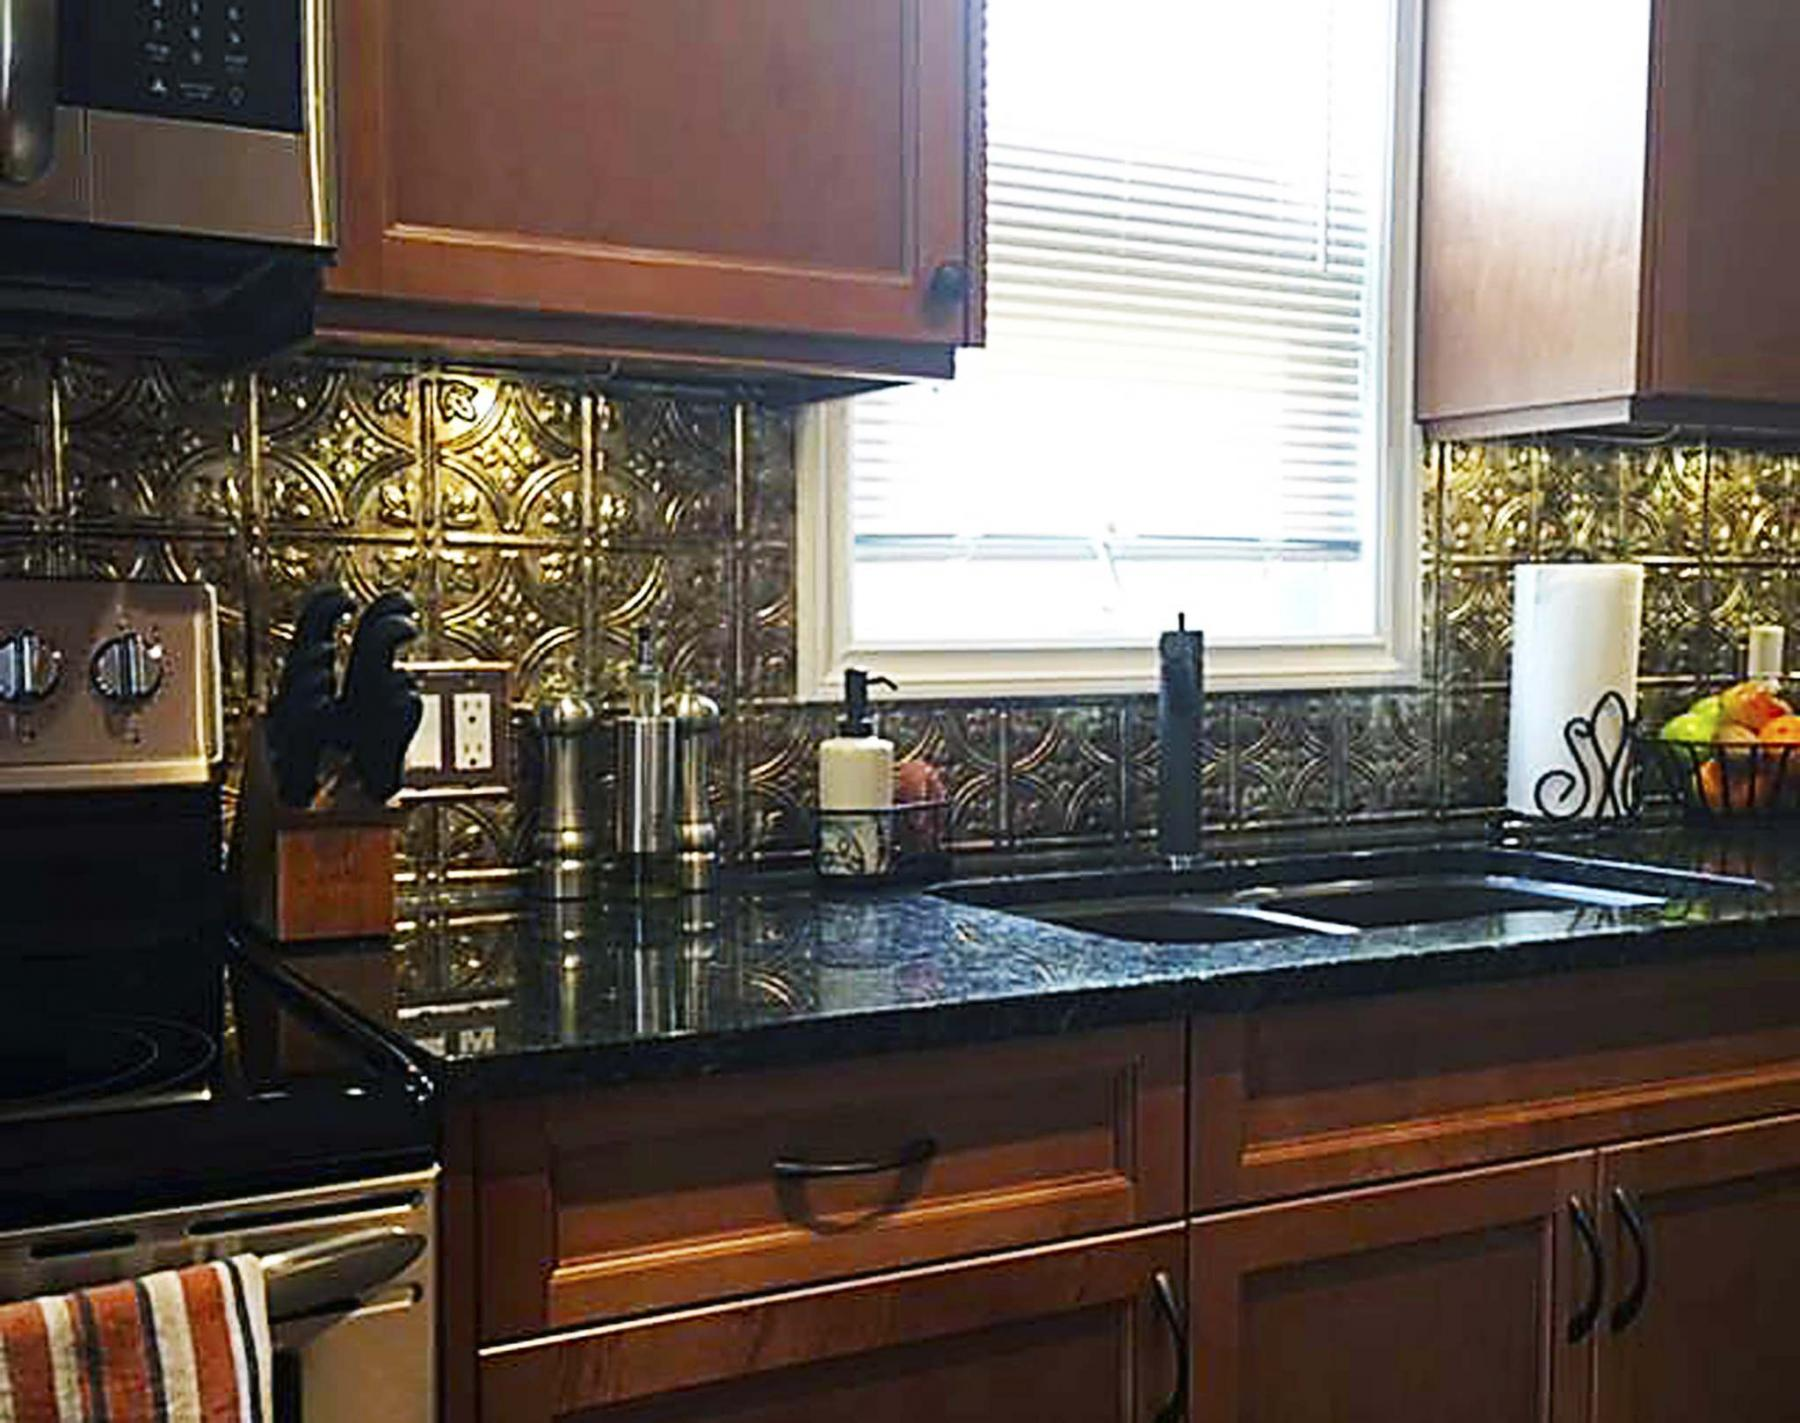 - Backsplash Alternative Simple And Stylish - Winnipeg Free Press Homes